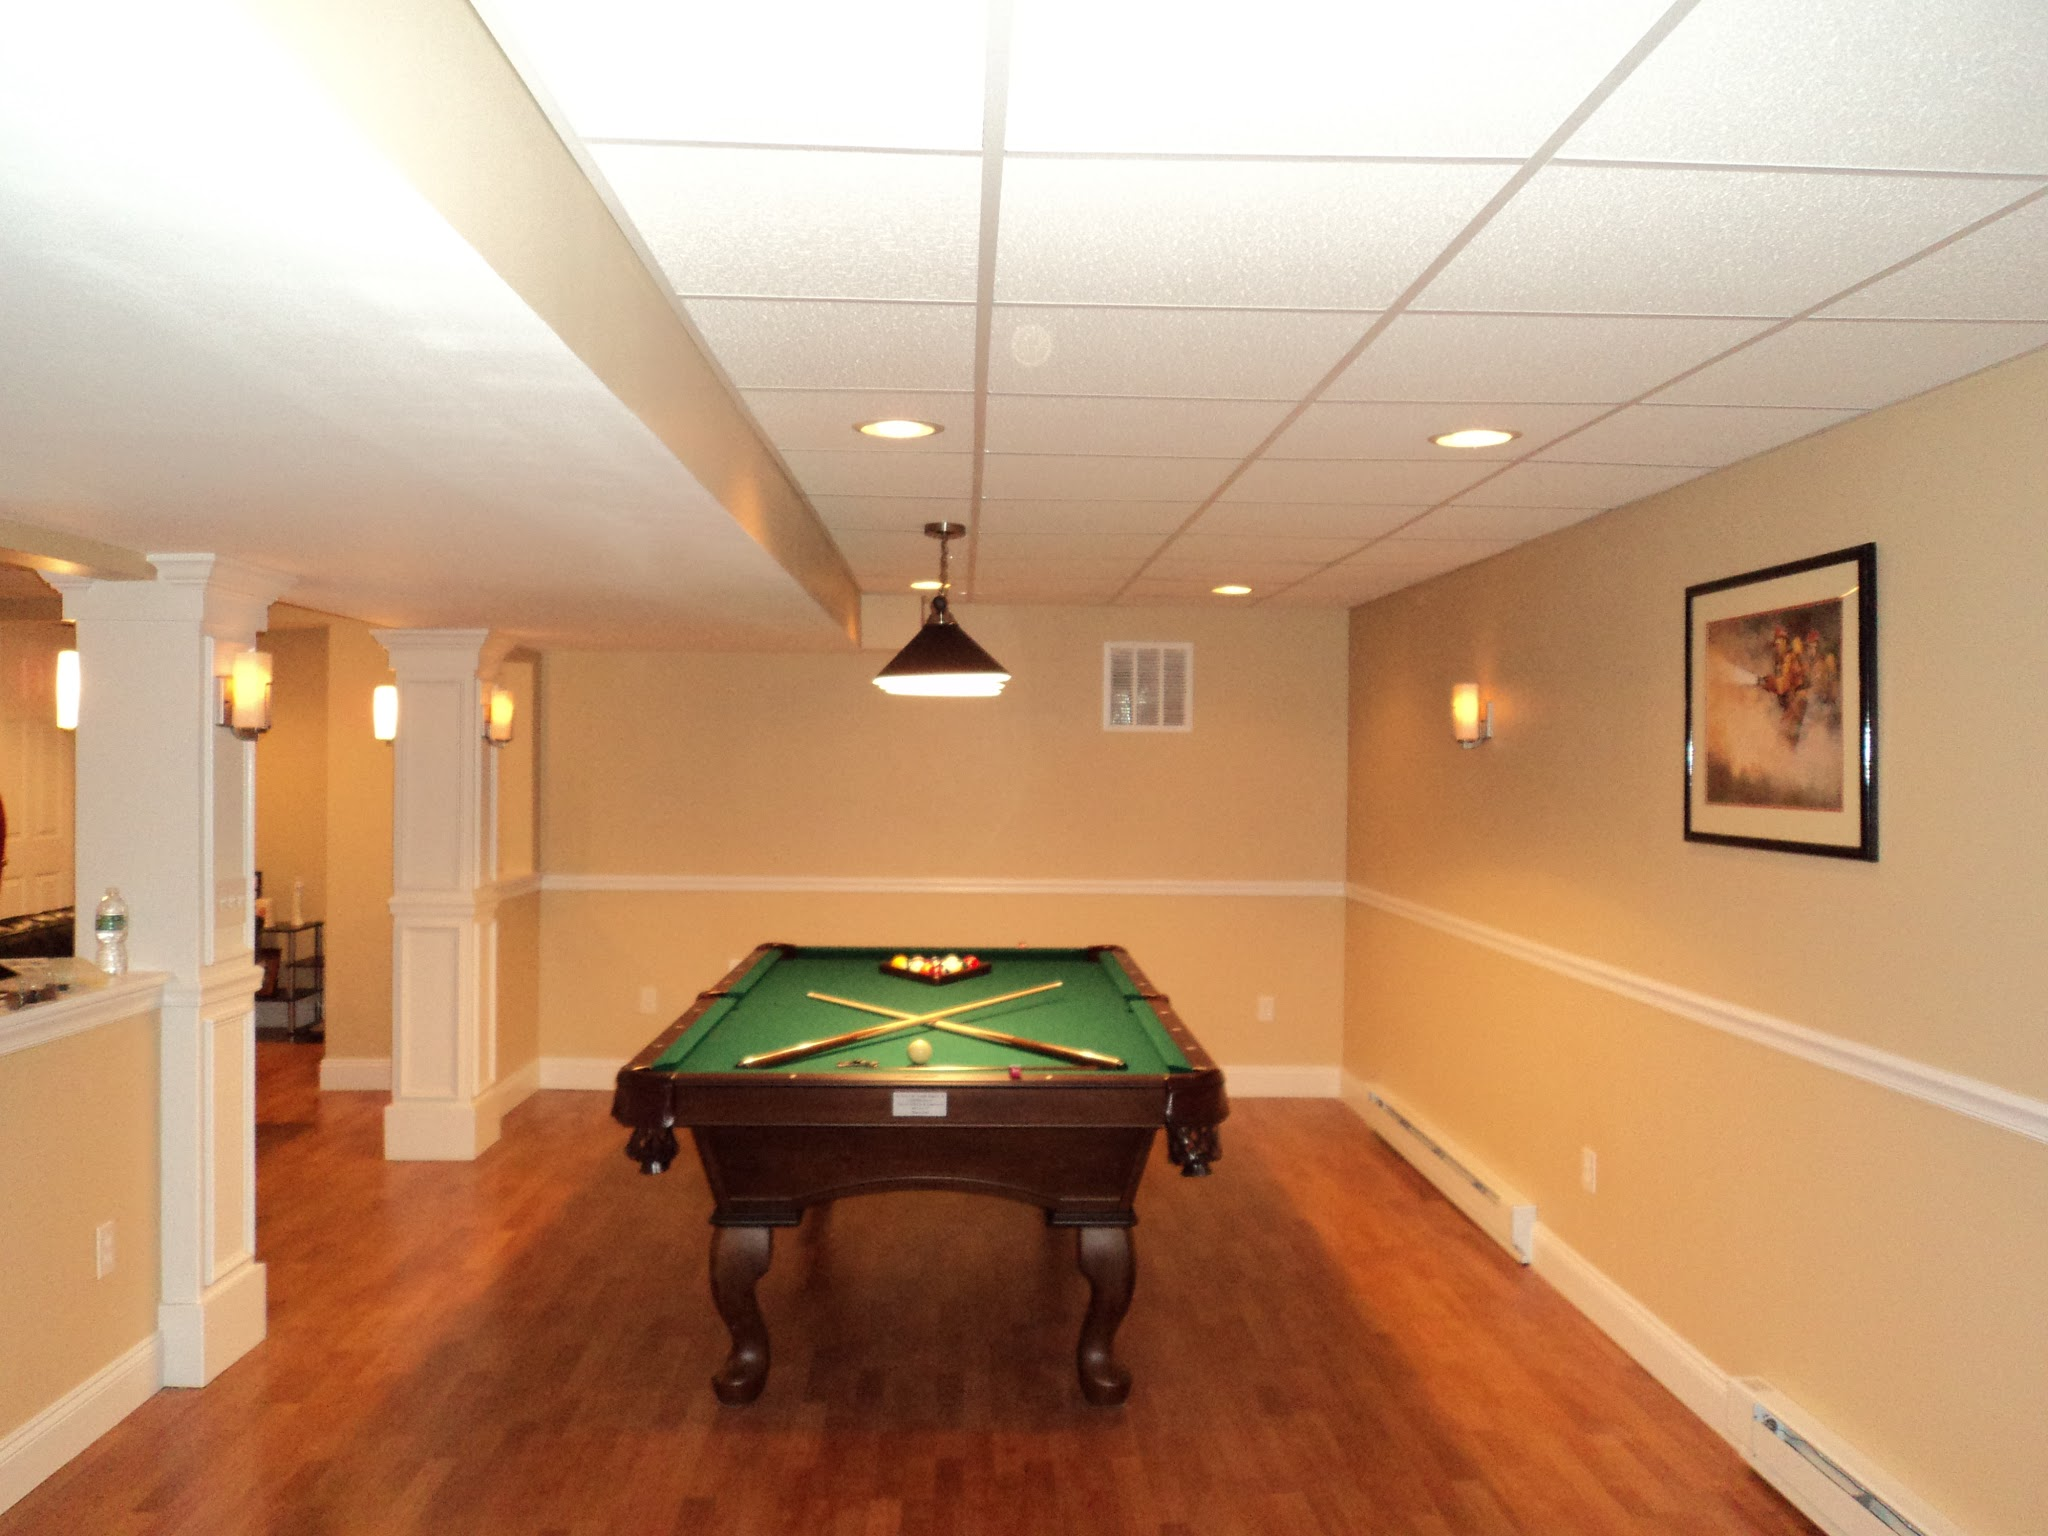 Basement Finish Remodel For CT Style Fix My House | Shaw Remodeling